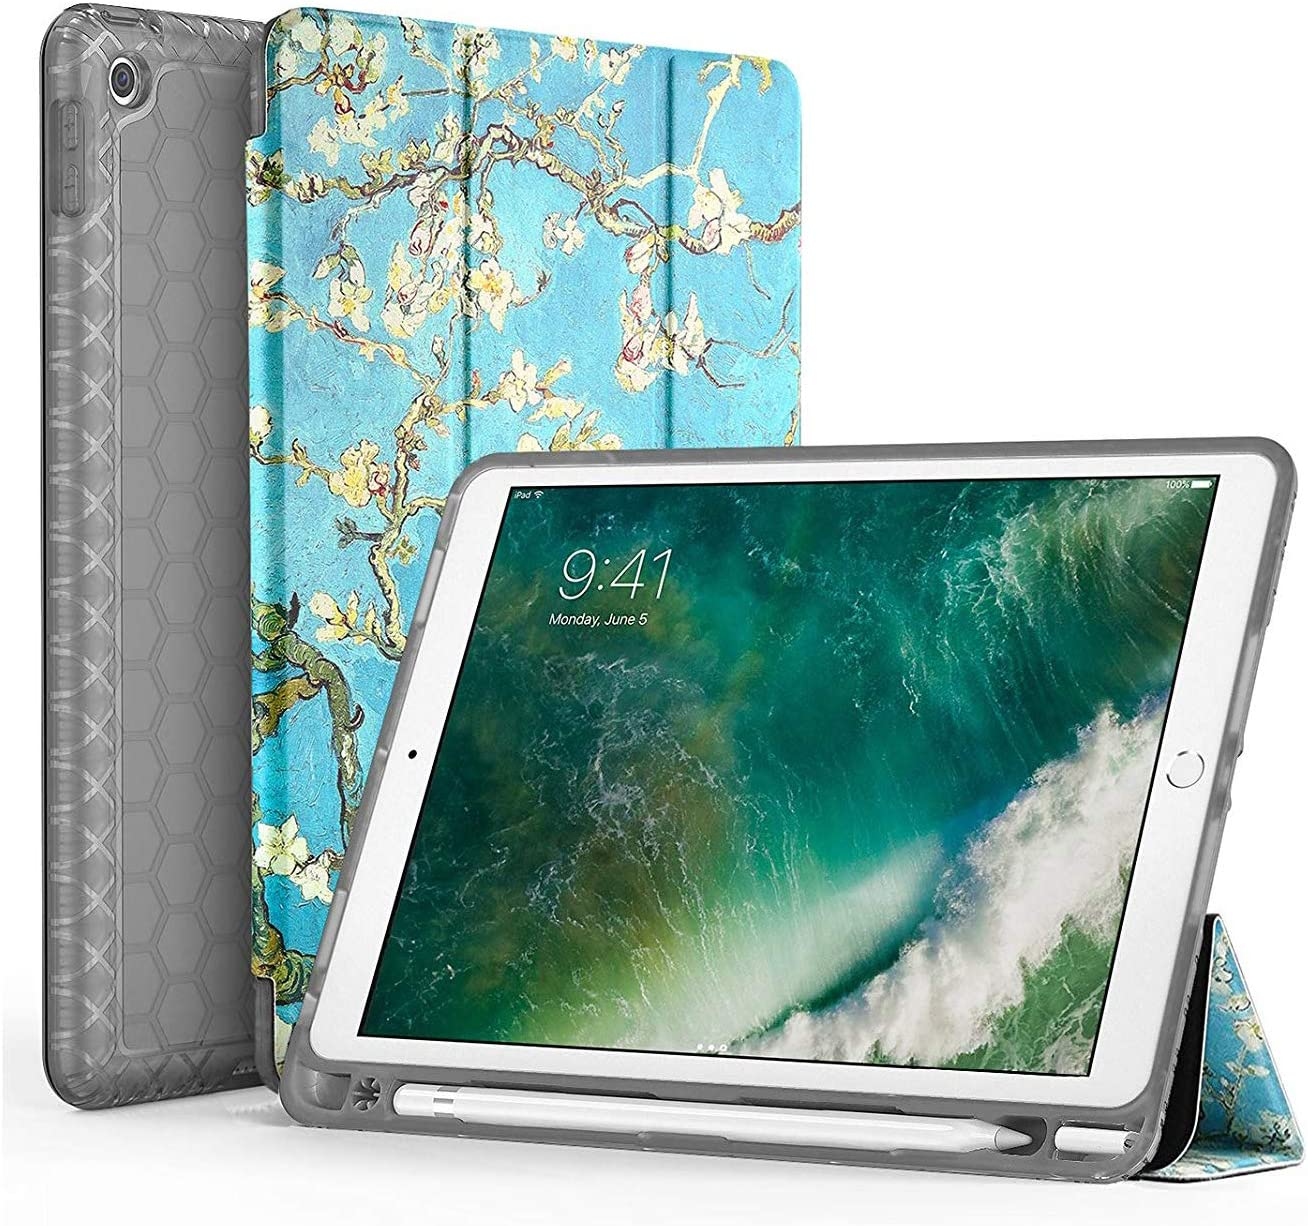 SWEES Compatible for iPad 9.7 2018/2017 Case with Pencil Holder, Shockproof Durable Smart Cover Leather Case with Built-in Pencil Holder Compatible for iPad 9.7 inch 6th/5th Generation, Blossom